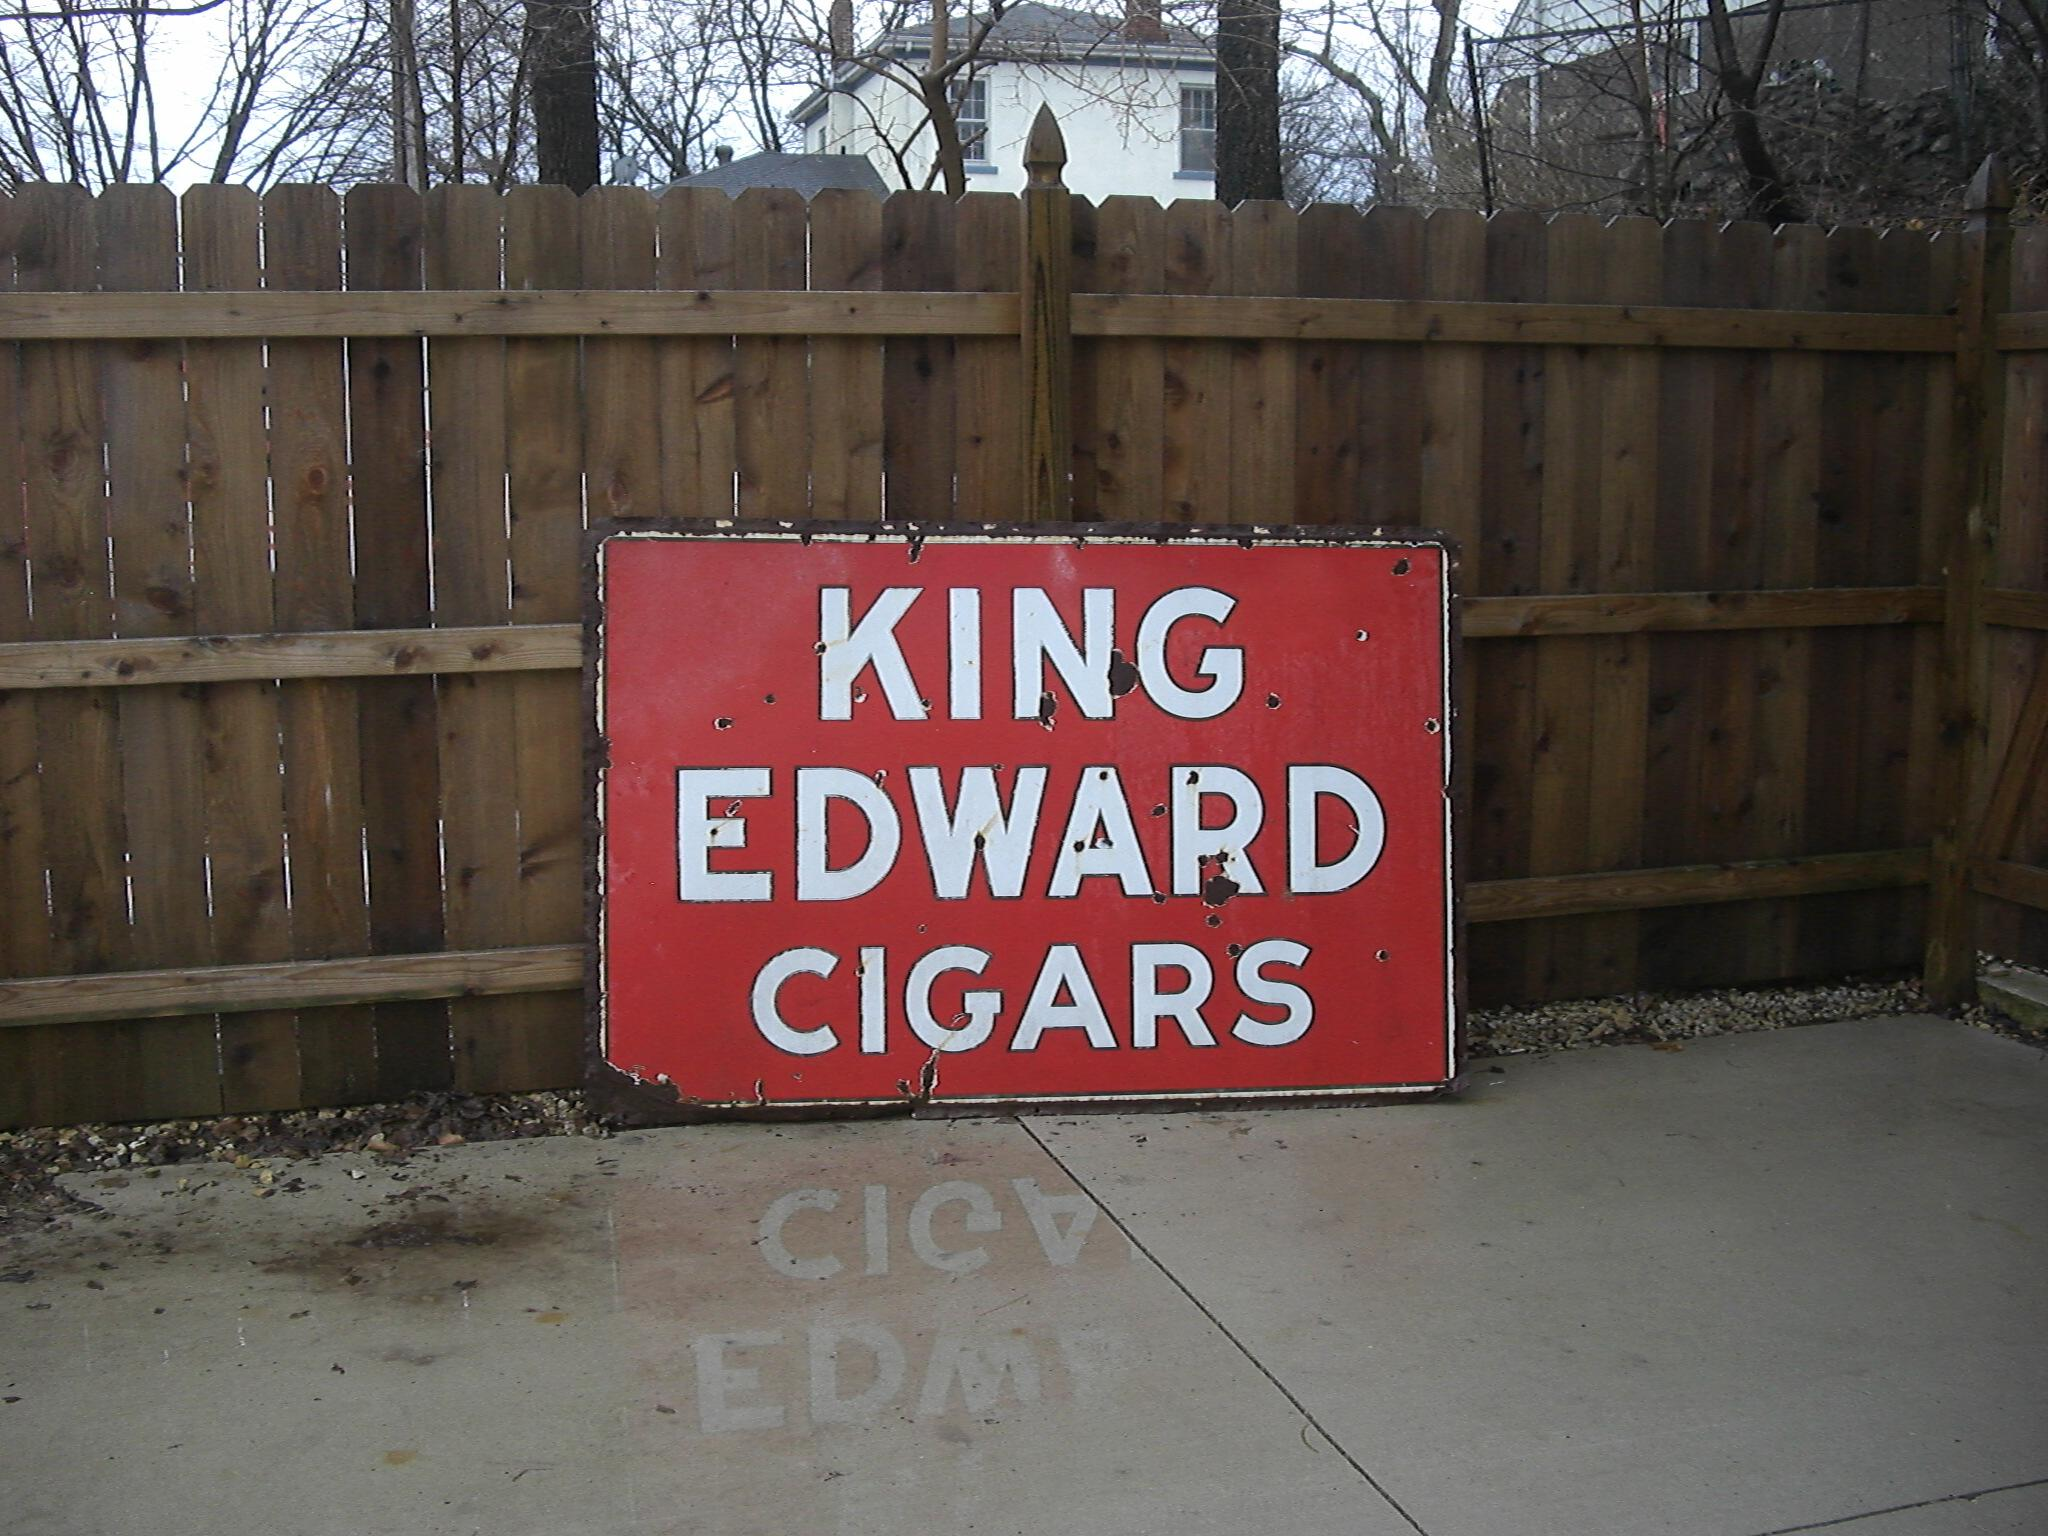 King Edward Cigars sign American Pickers